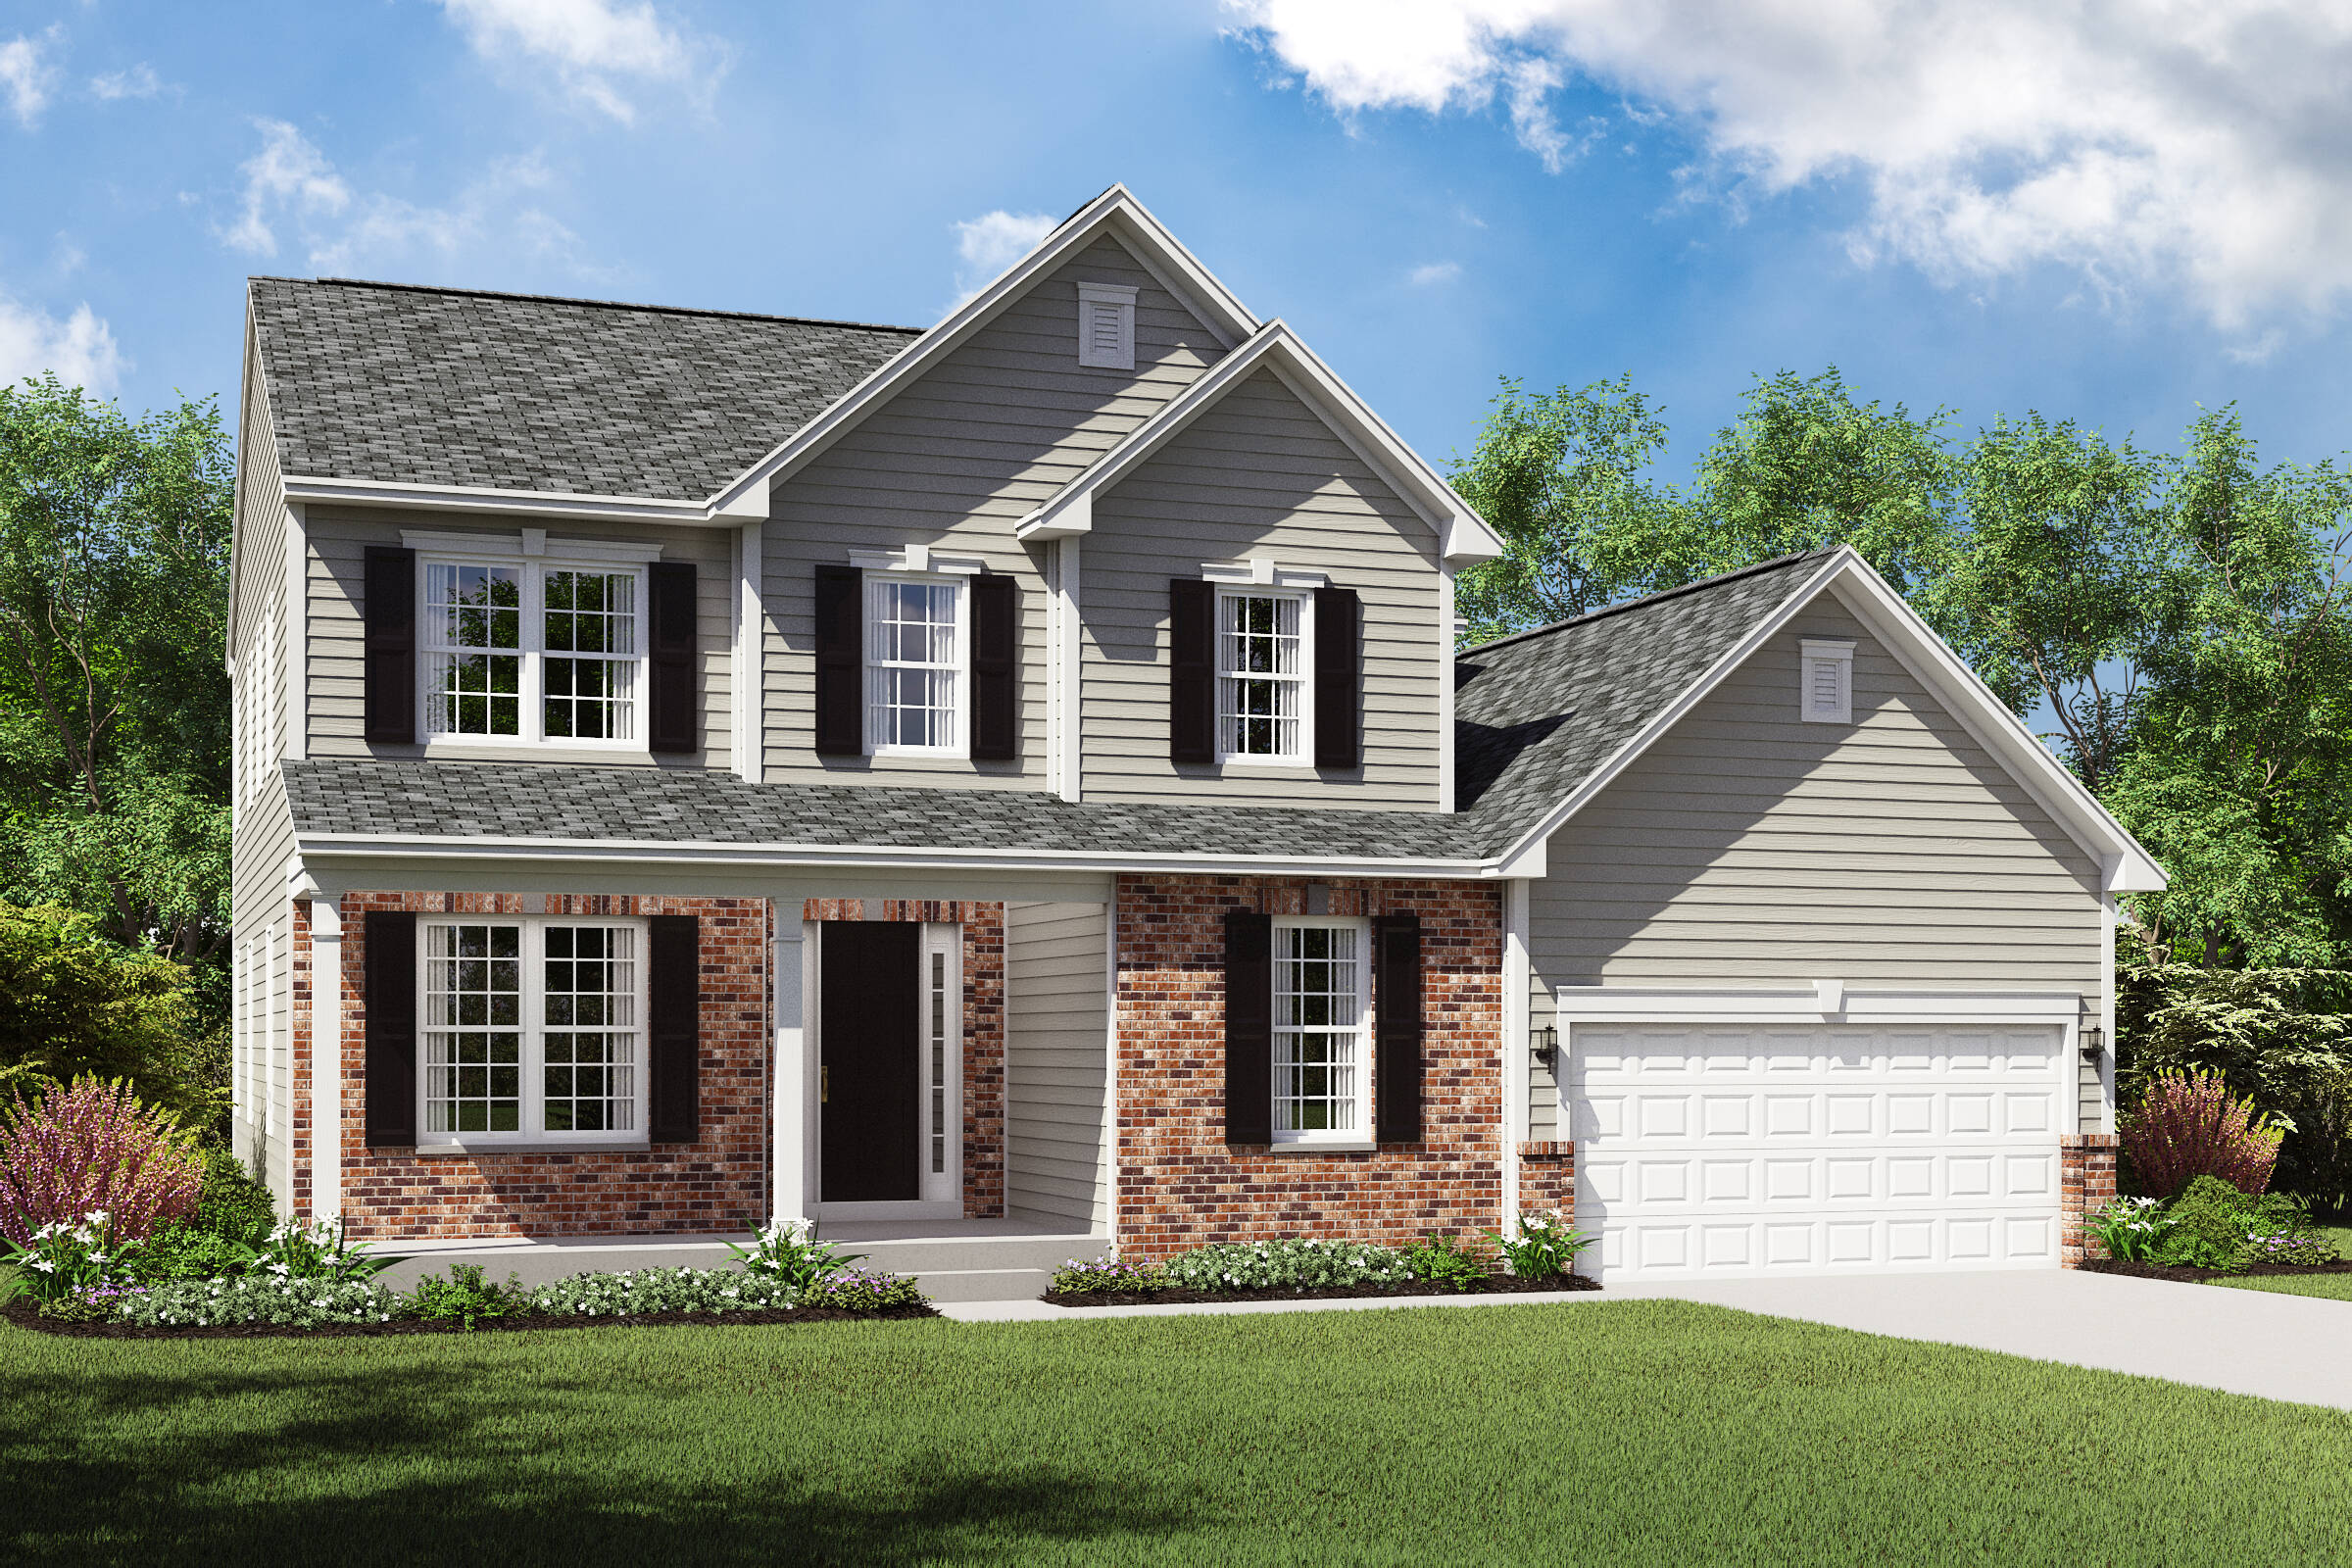 hopewell cb greater cleveland new home for sale